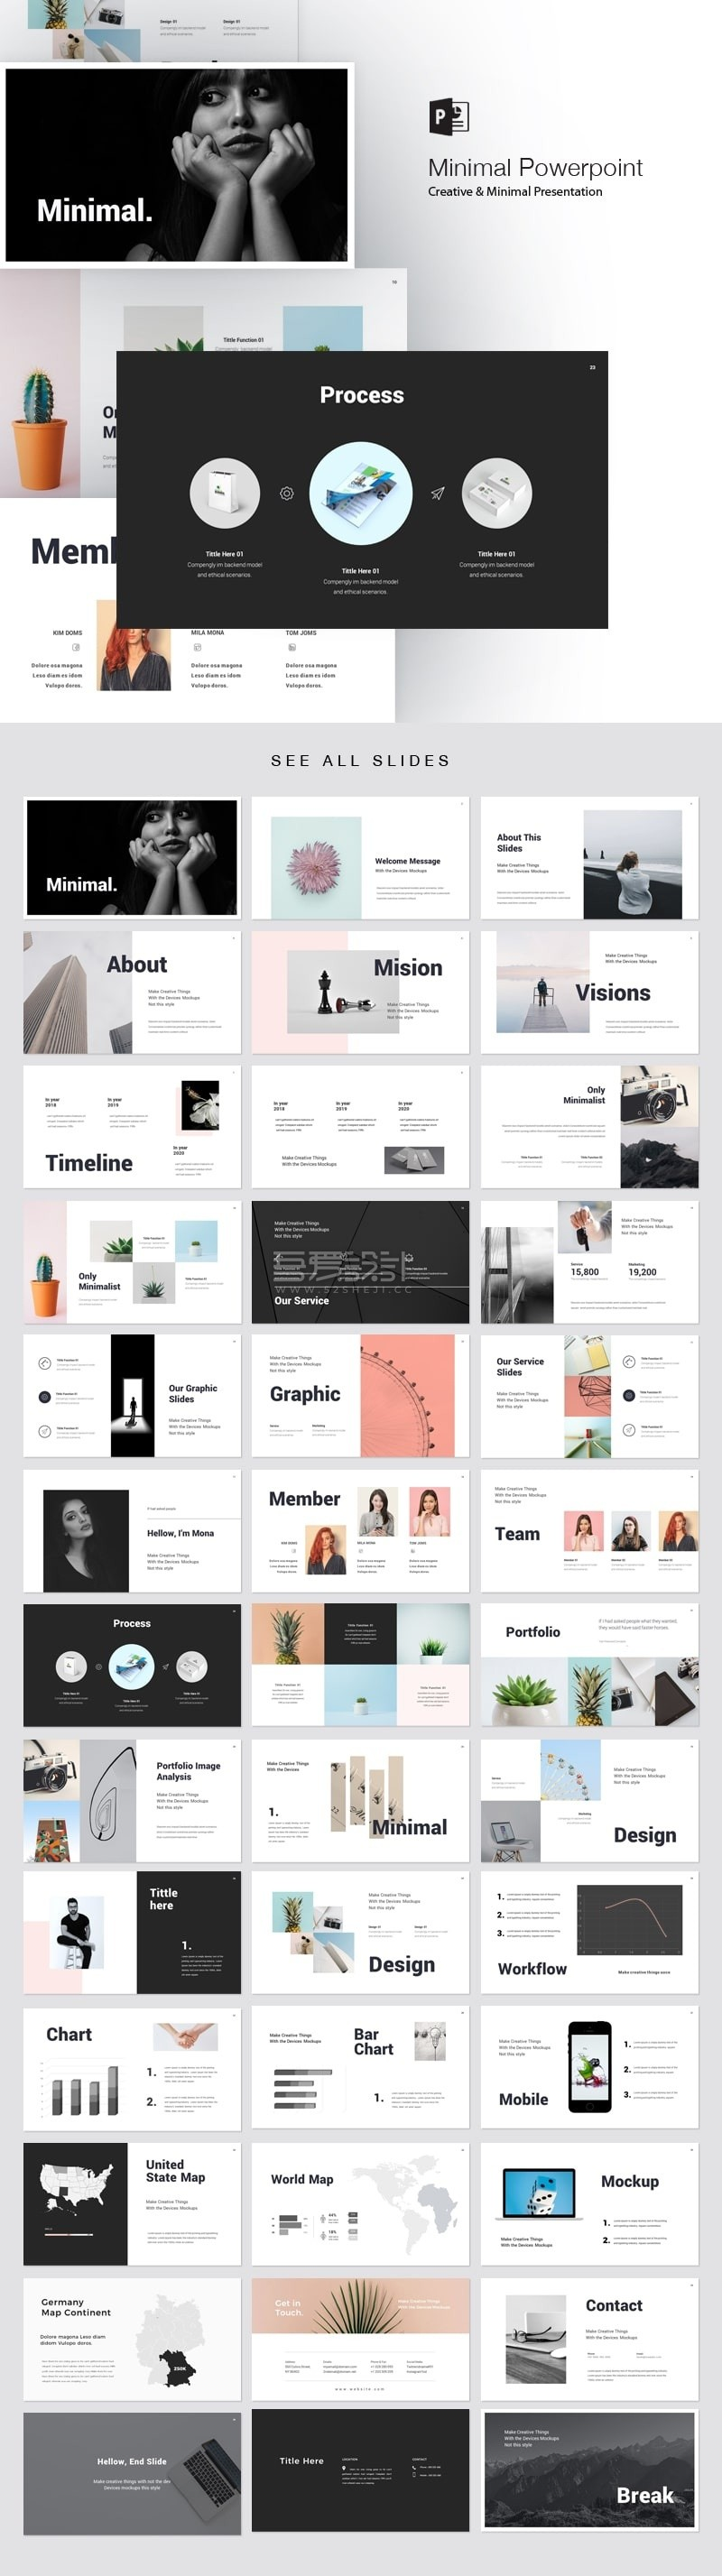 minimal-powerpoint-presentation-template-1609-preview_01